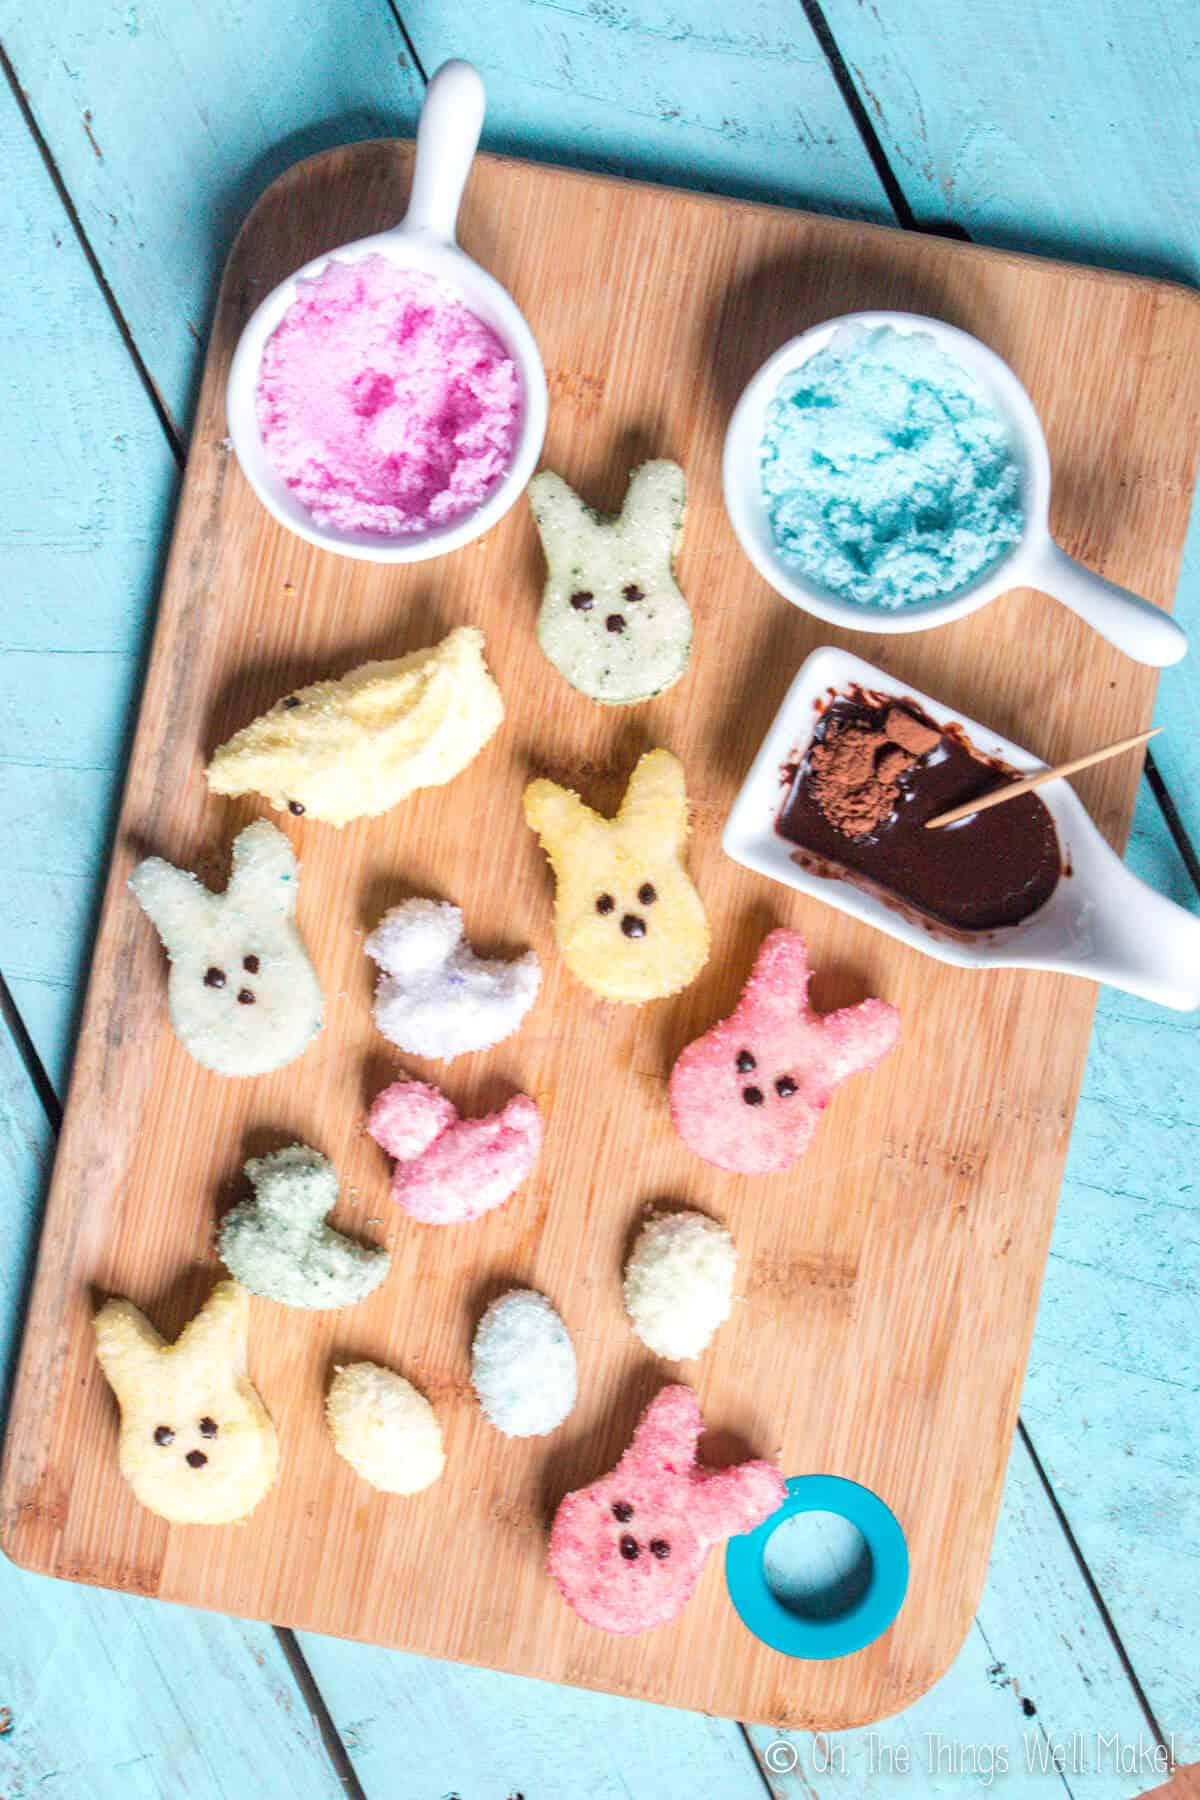 Overhead view of homemade marshmallow peeps covered with naturally colored sugar crystals on a bamboo cutting board.